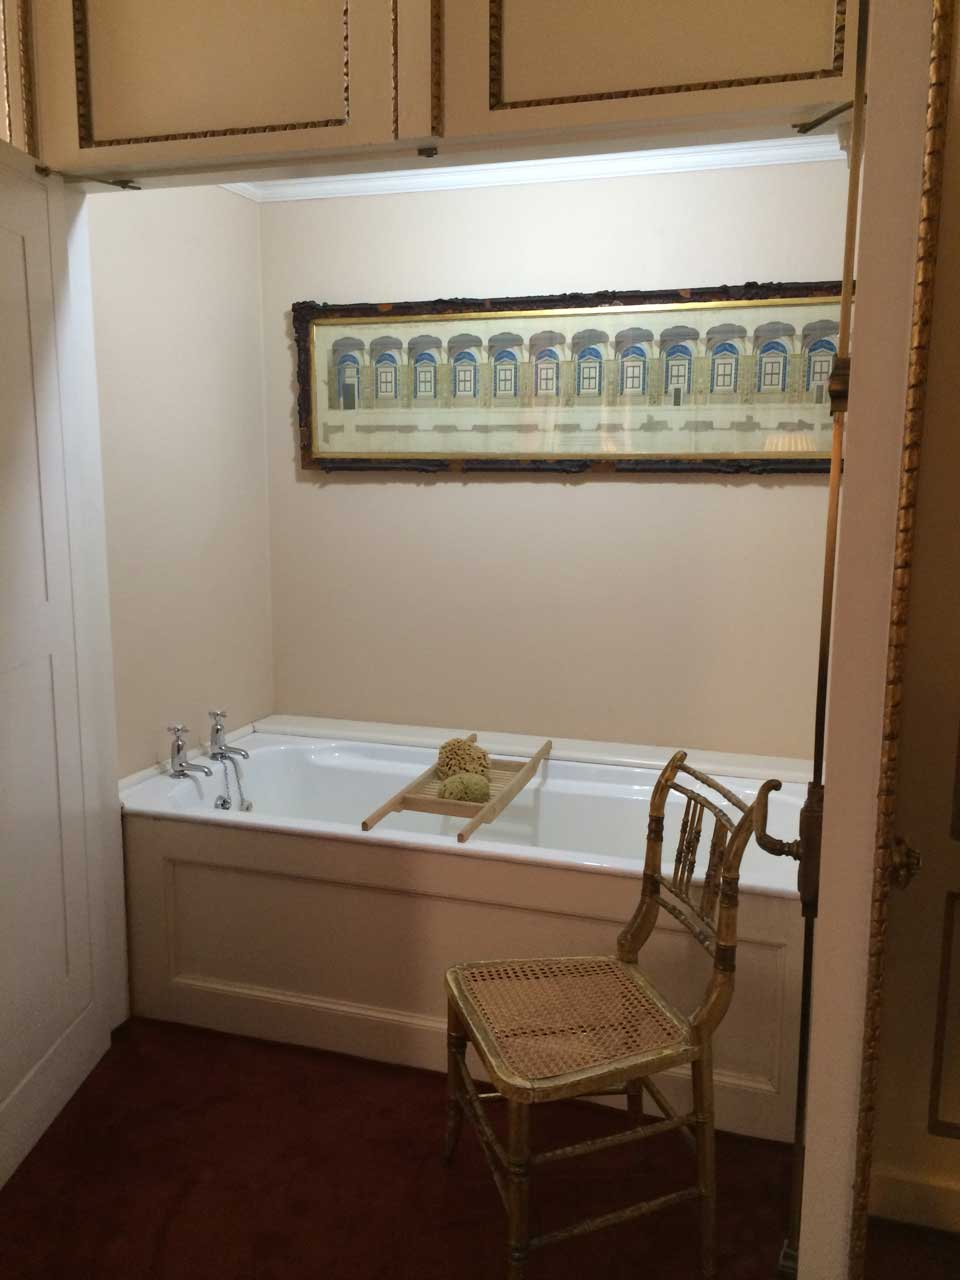 chatsworth-caned-chair-in-loo